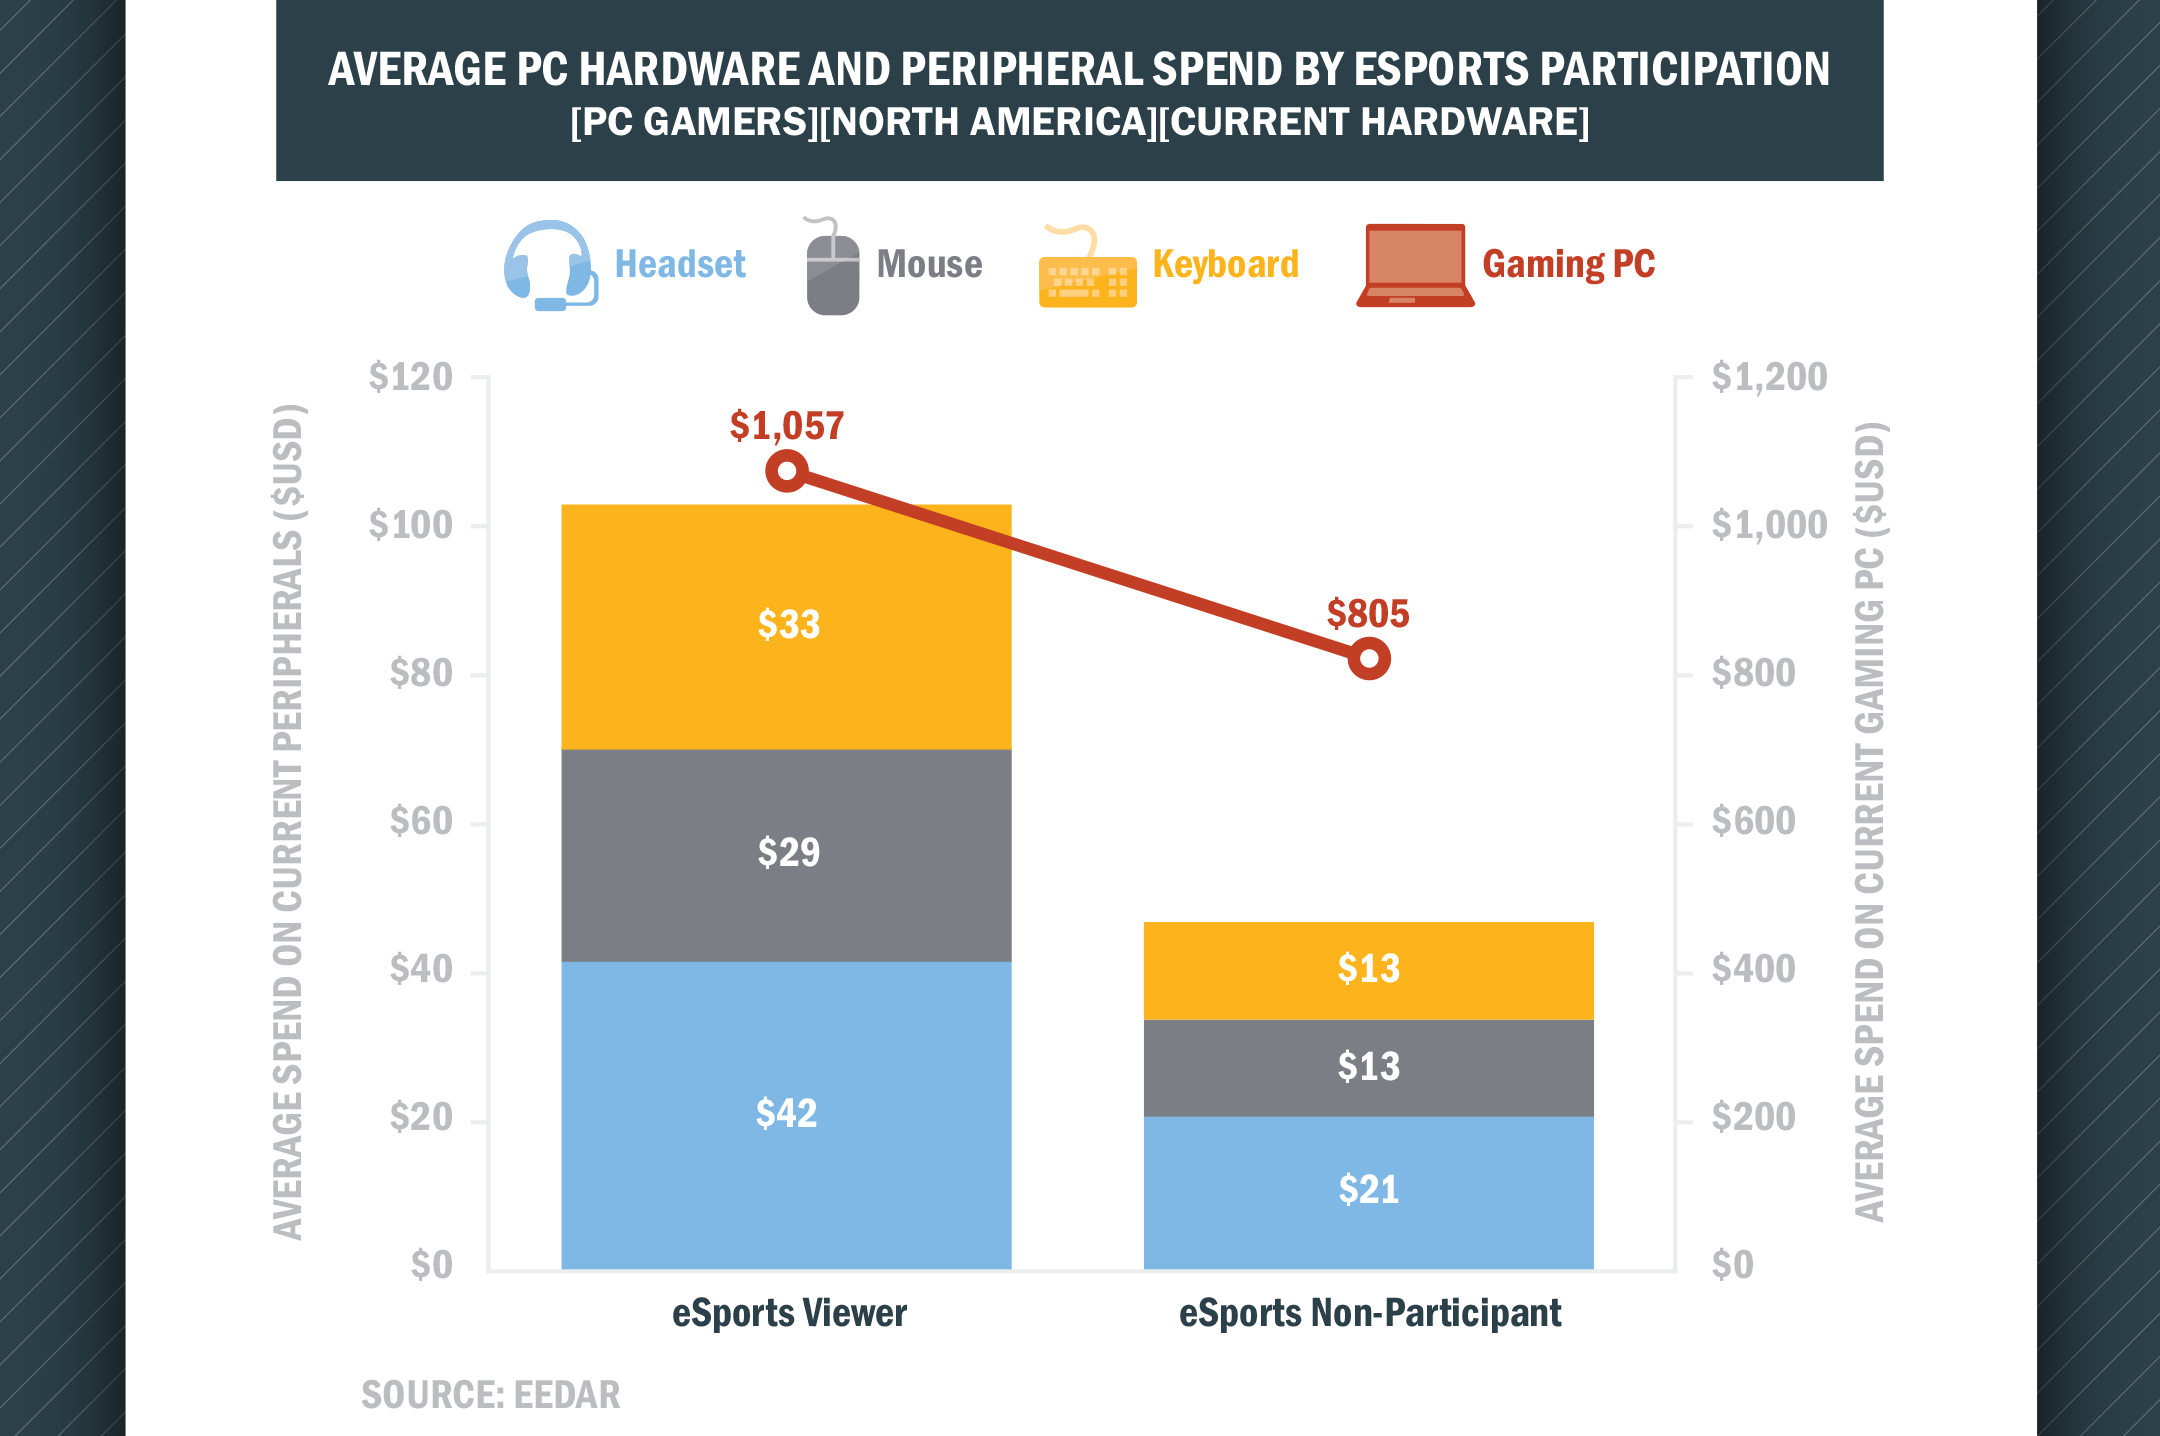 Hardware spending eSports players